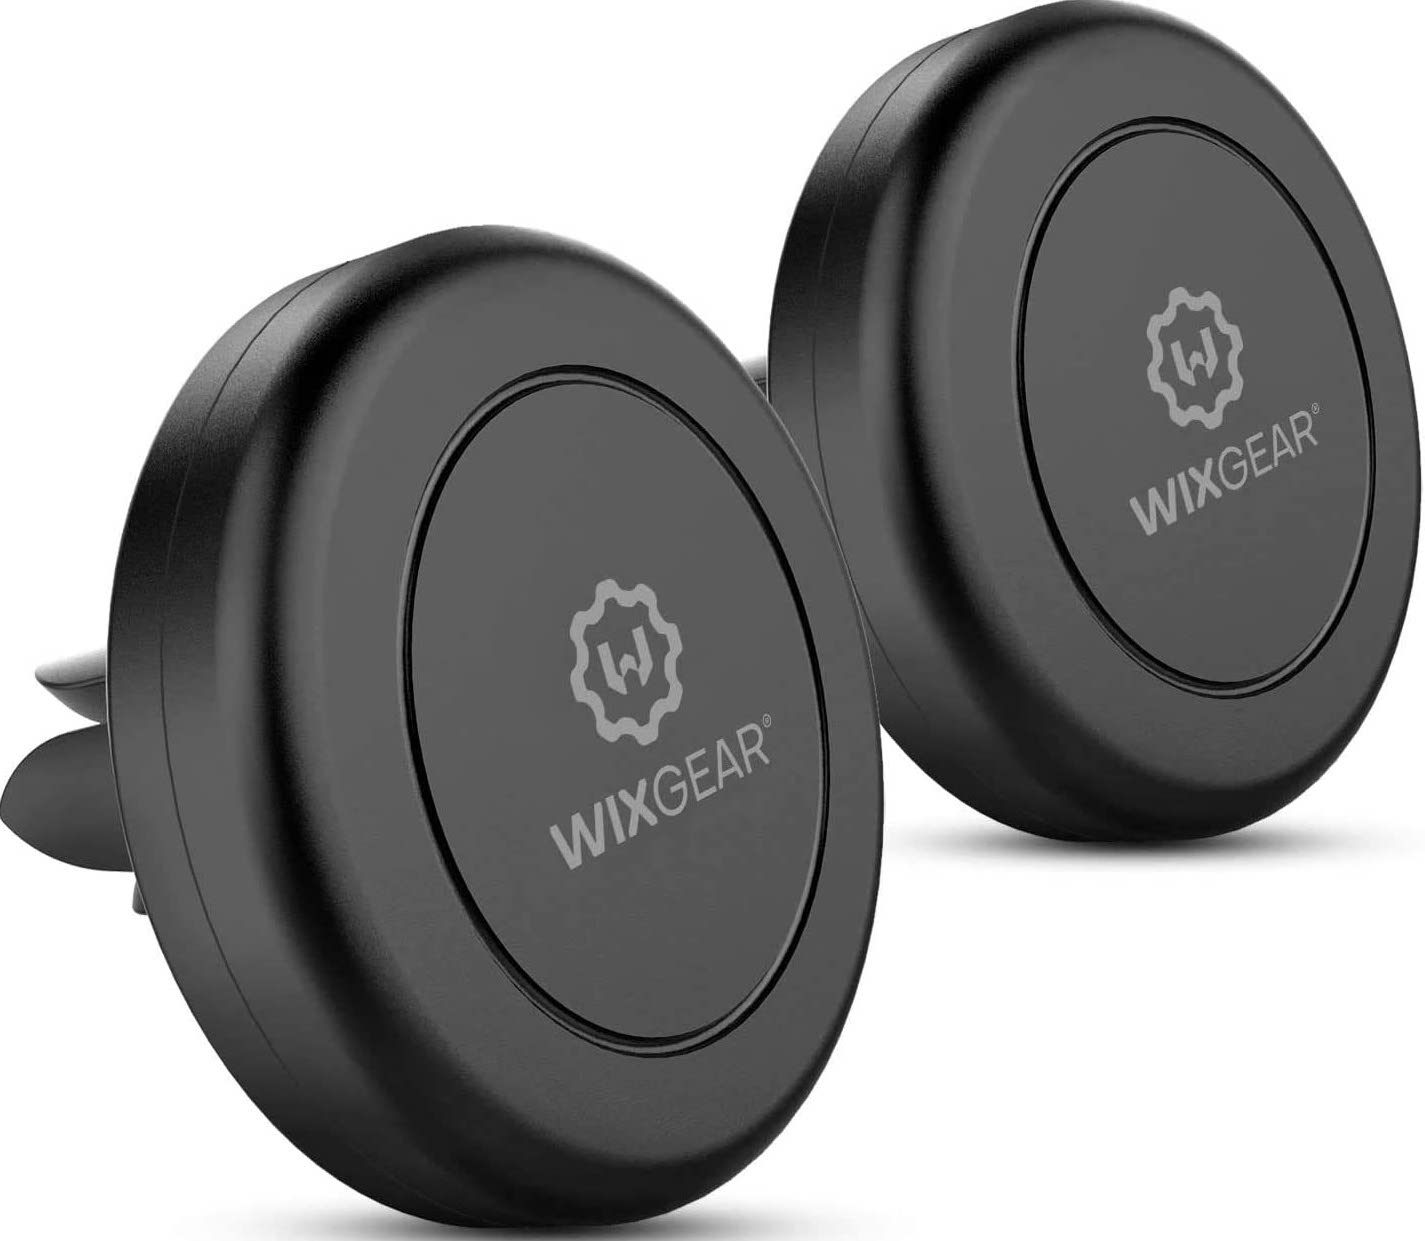 Wixgear Phone Mount Render Cropped